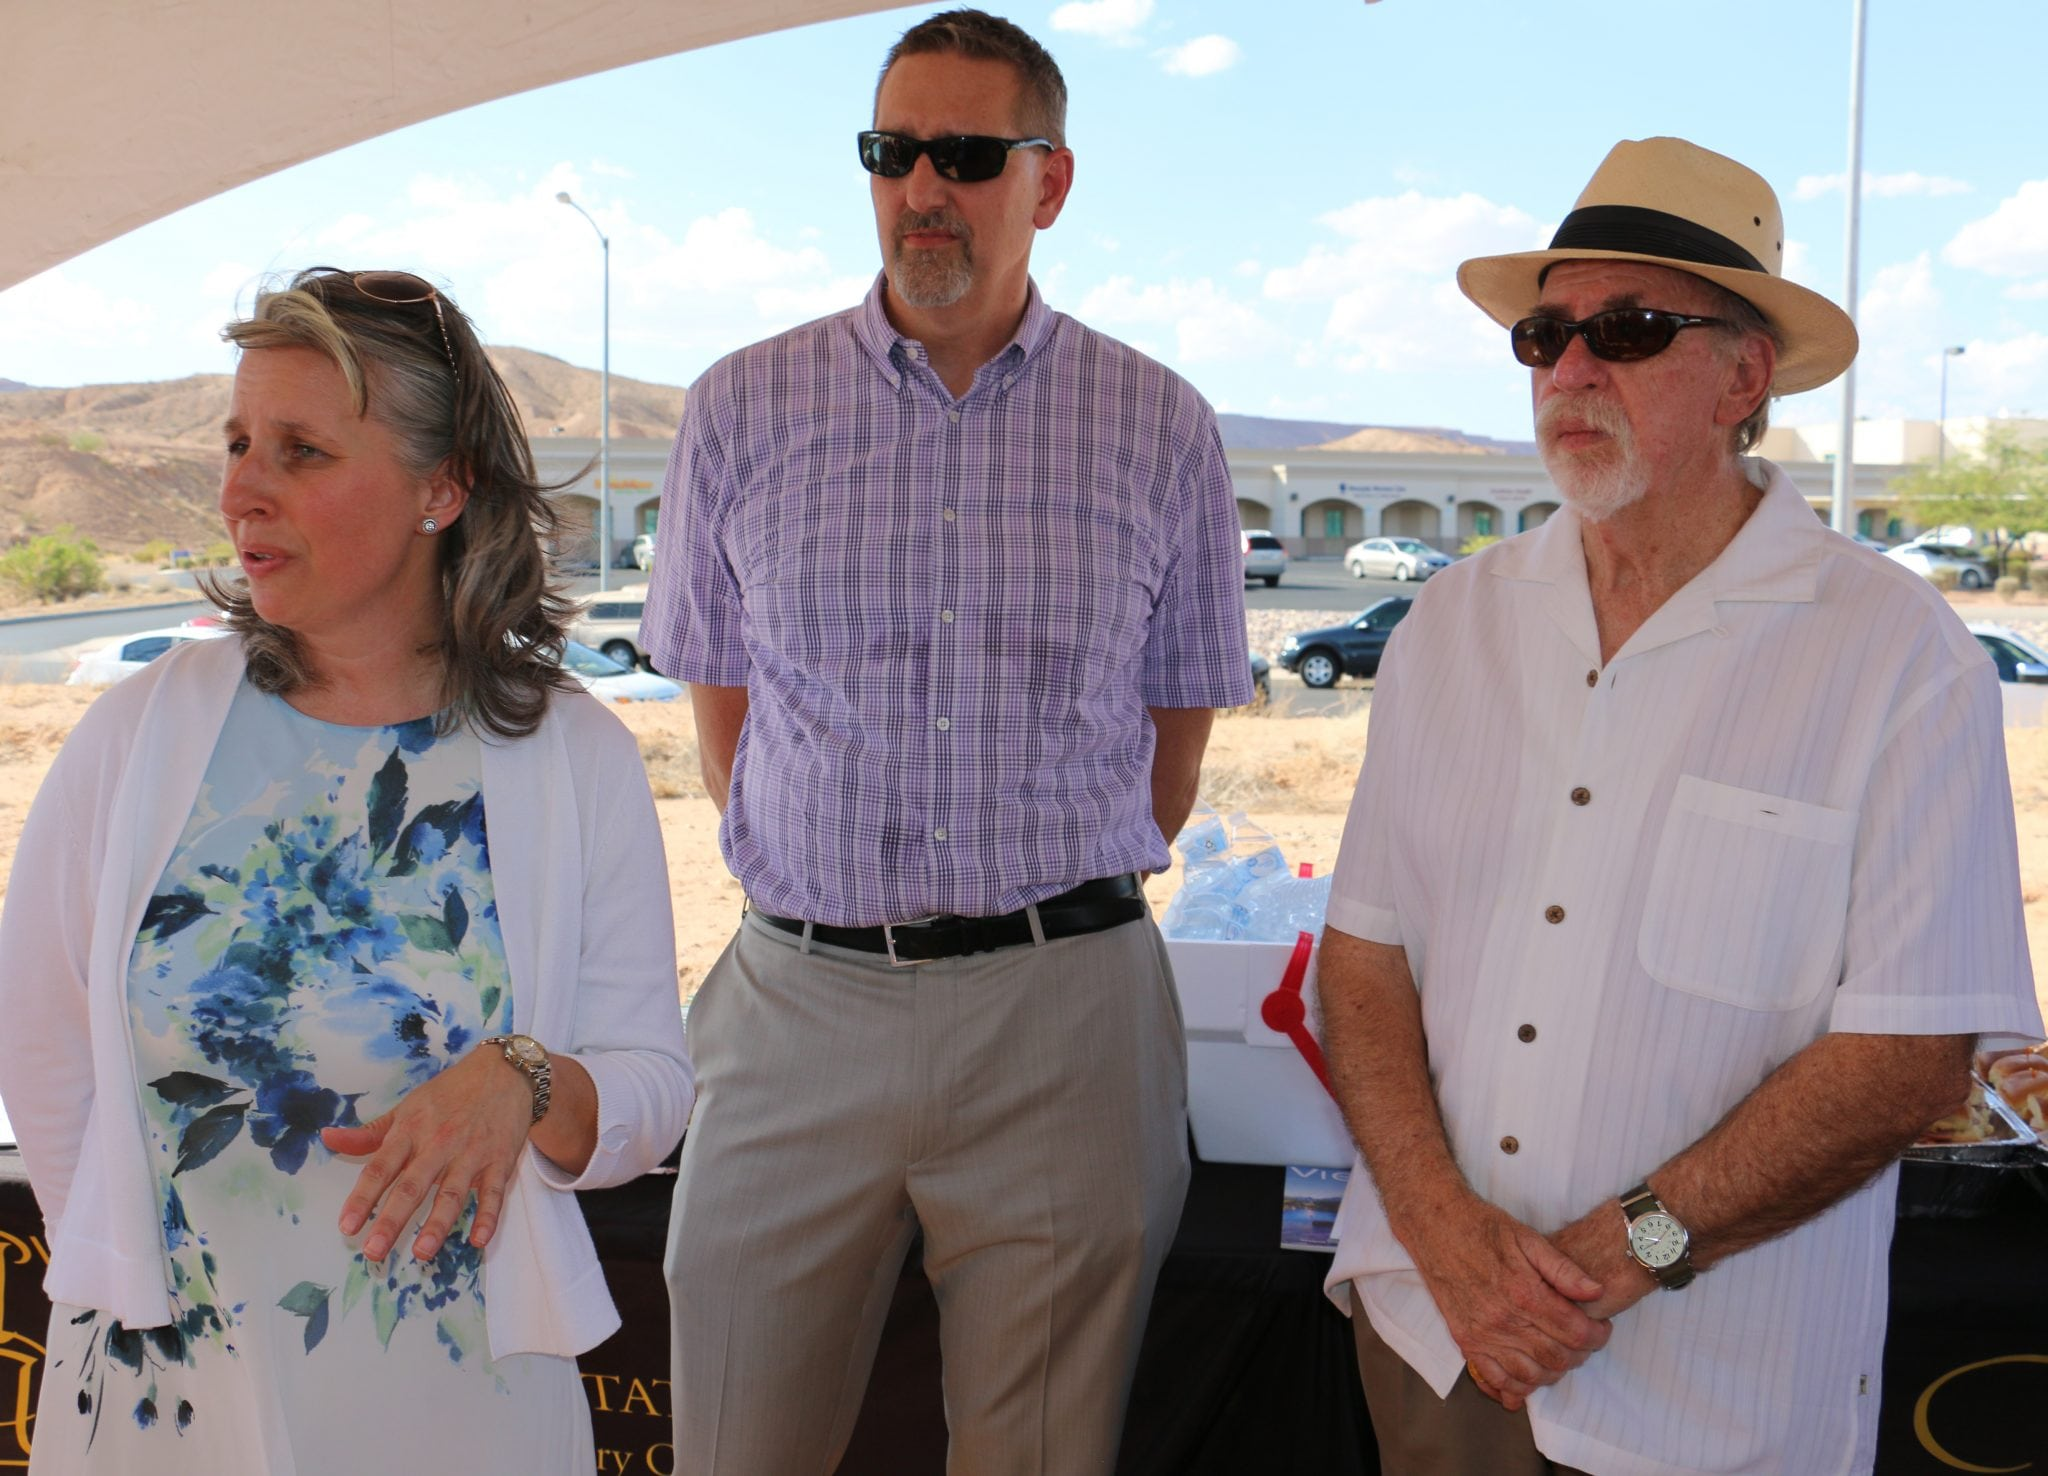 Mesa Valley breaks ground for new senior living center